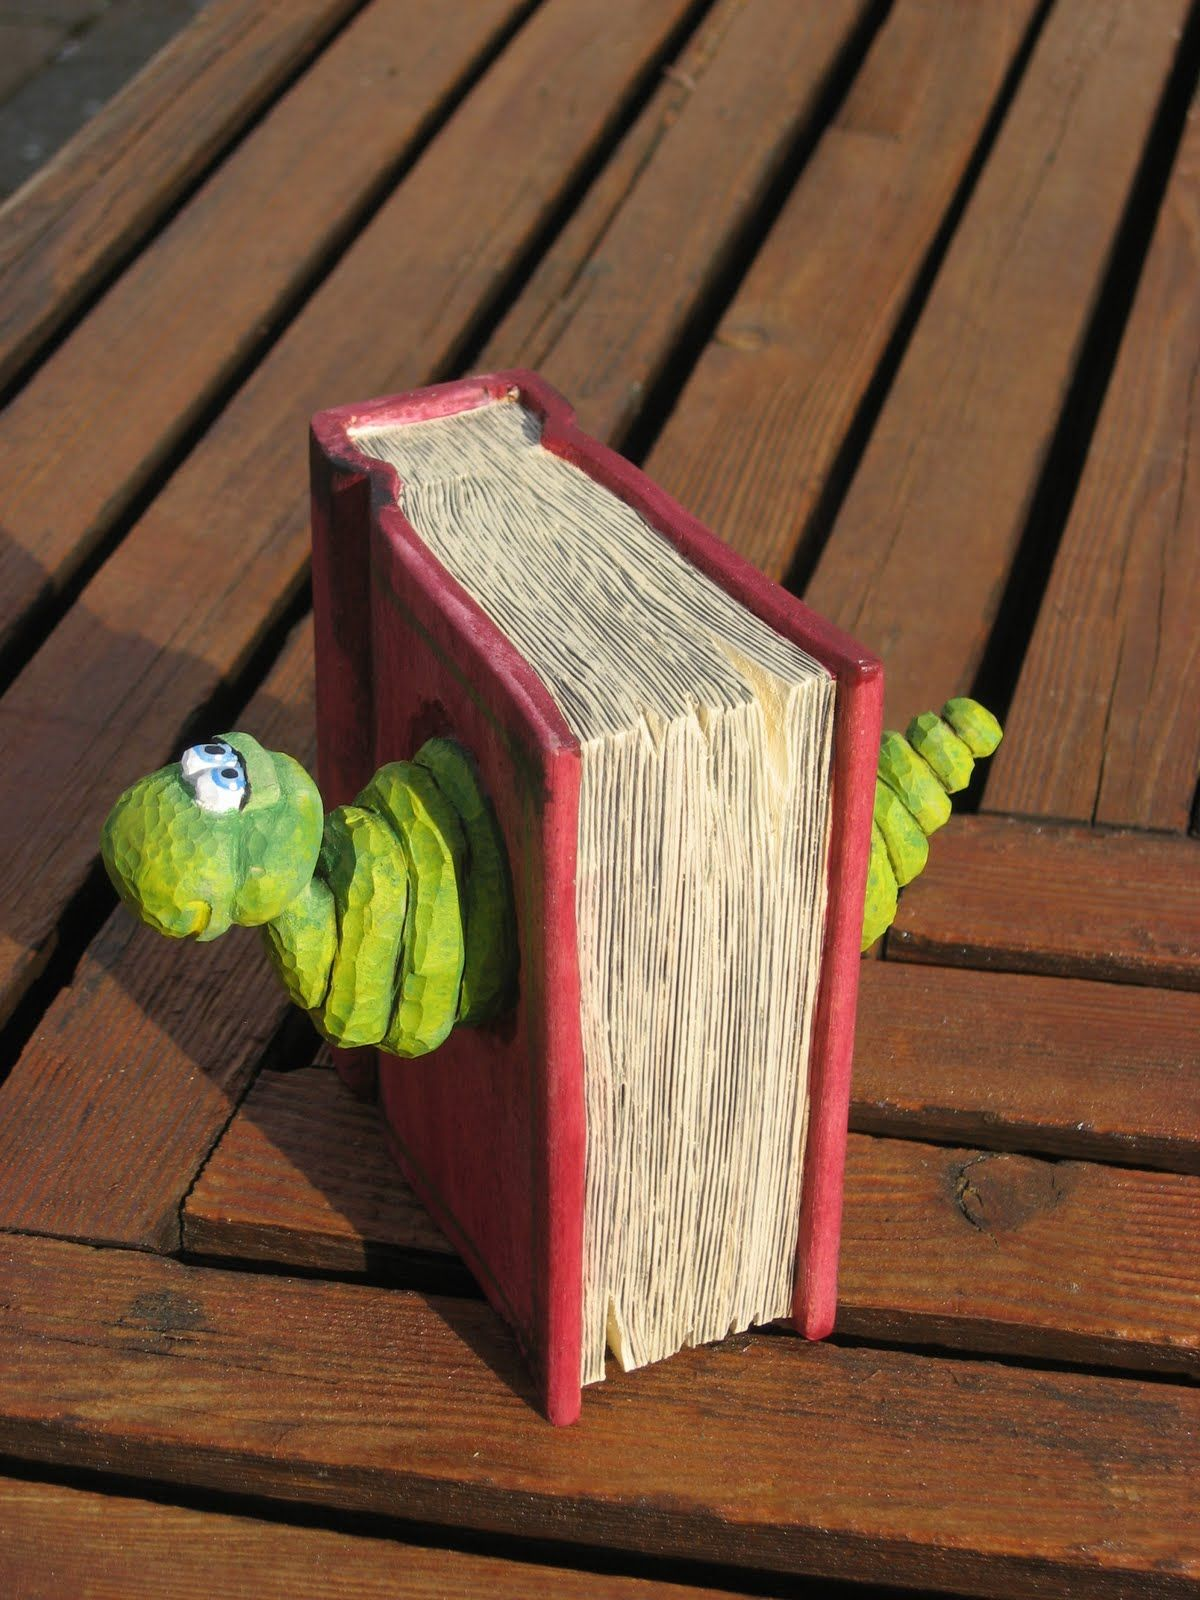 Bookworm wood carving - a birthday gift | Fred Ainge ...